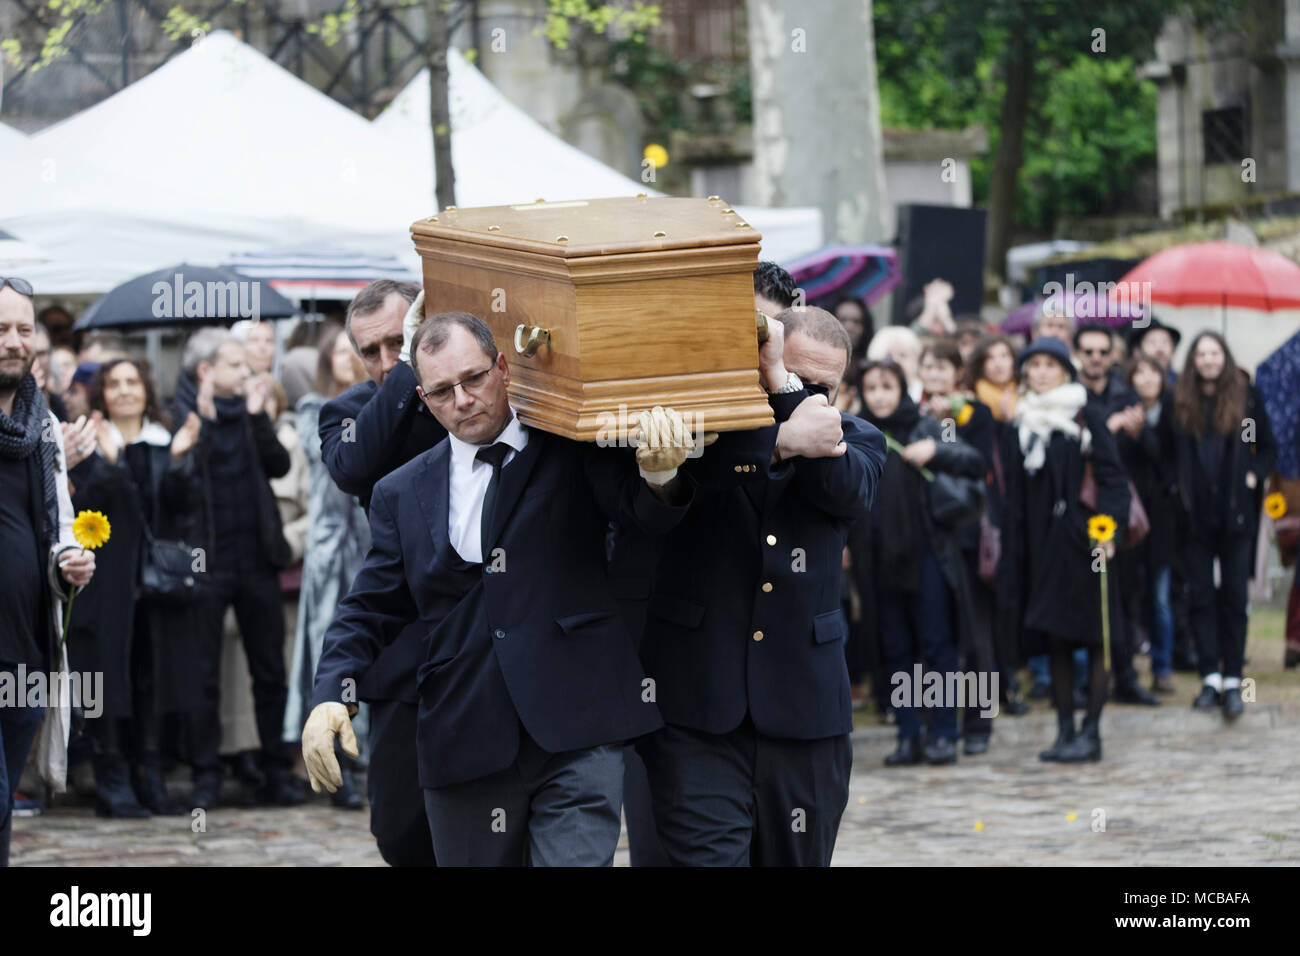 Paris, France. 12th Apr, 2018. Jacques Higelin funeral at the Père-Lachaise cemetery on April 12, 2018 in Paris, France. - Stock Image